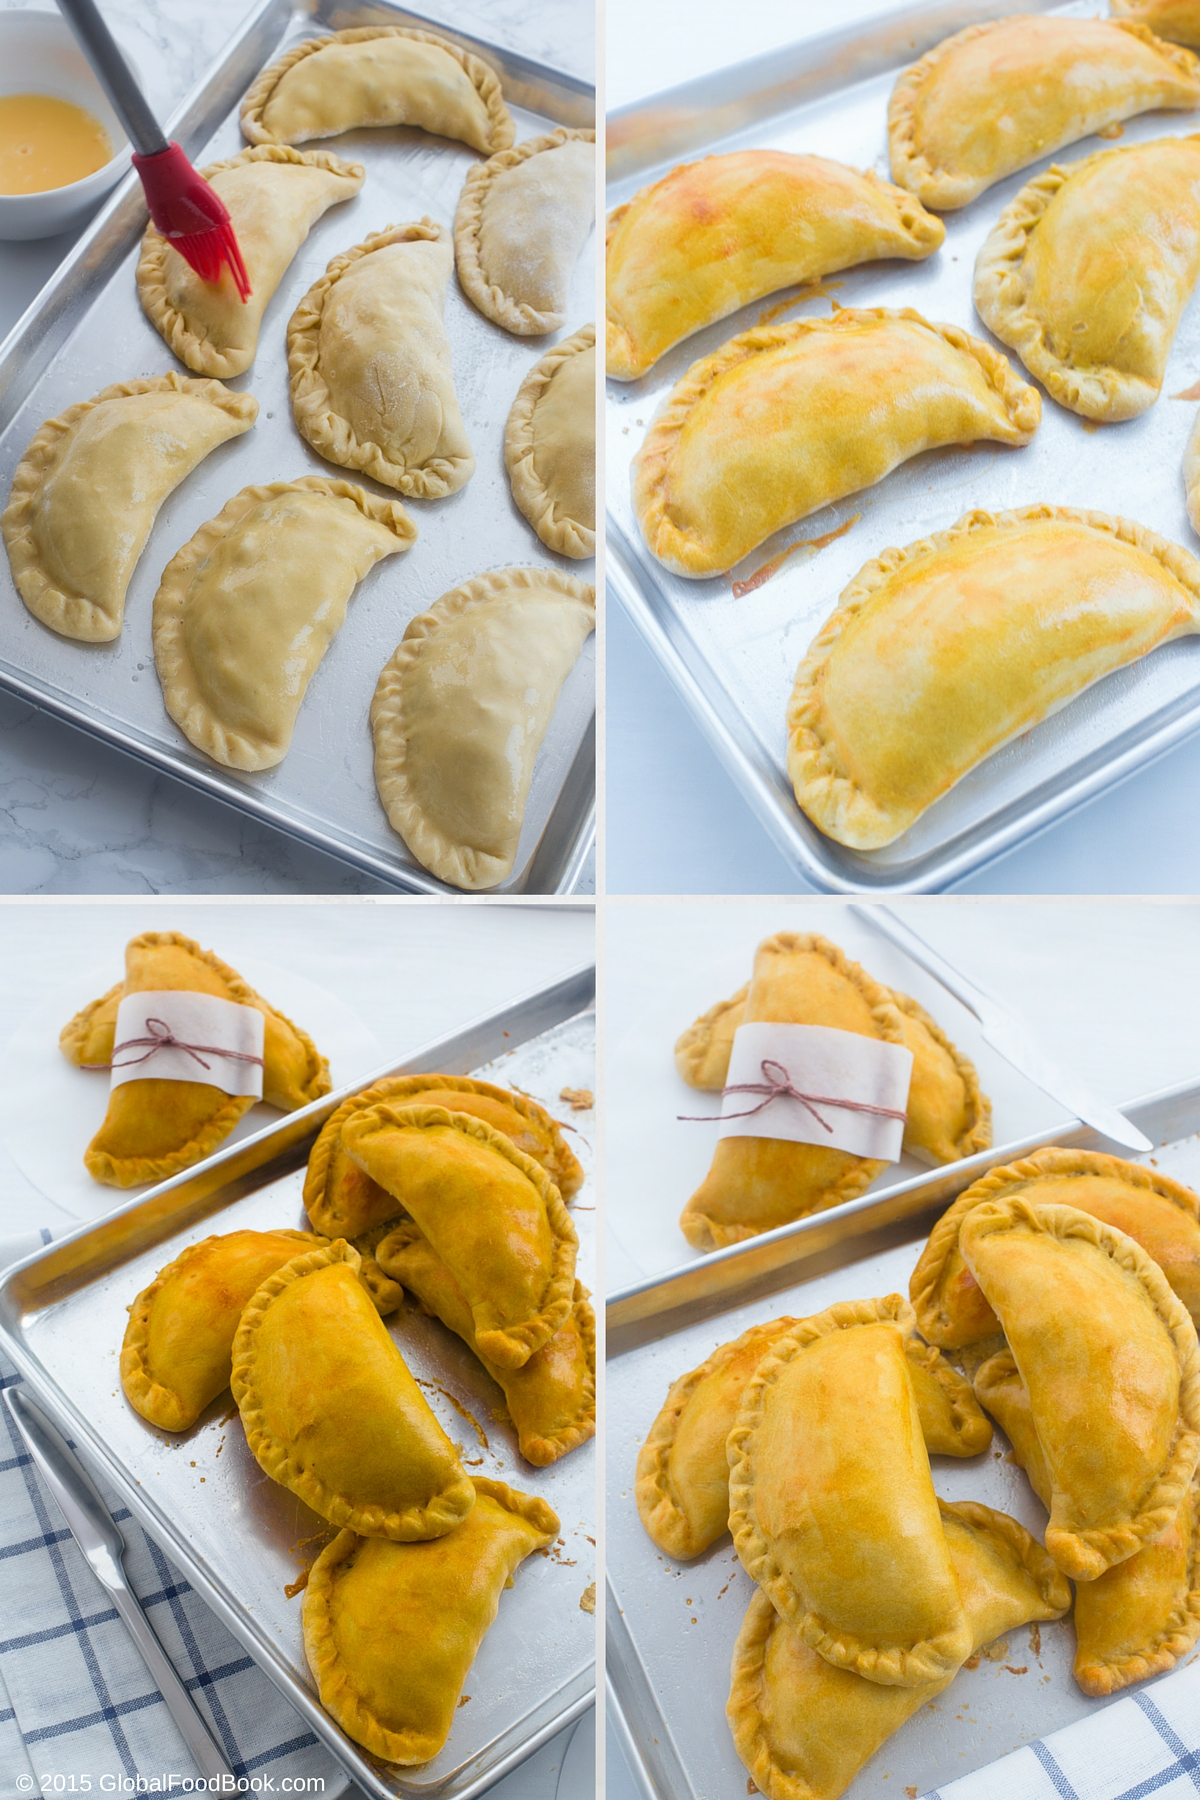 CORNISH PASTIES (2)